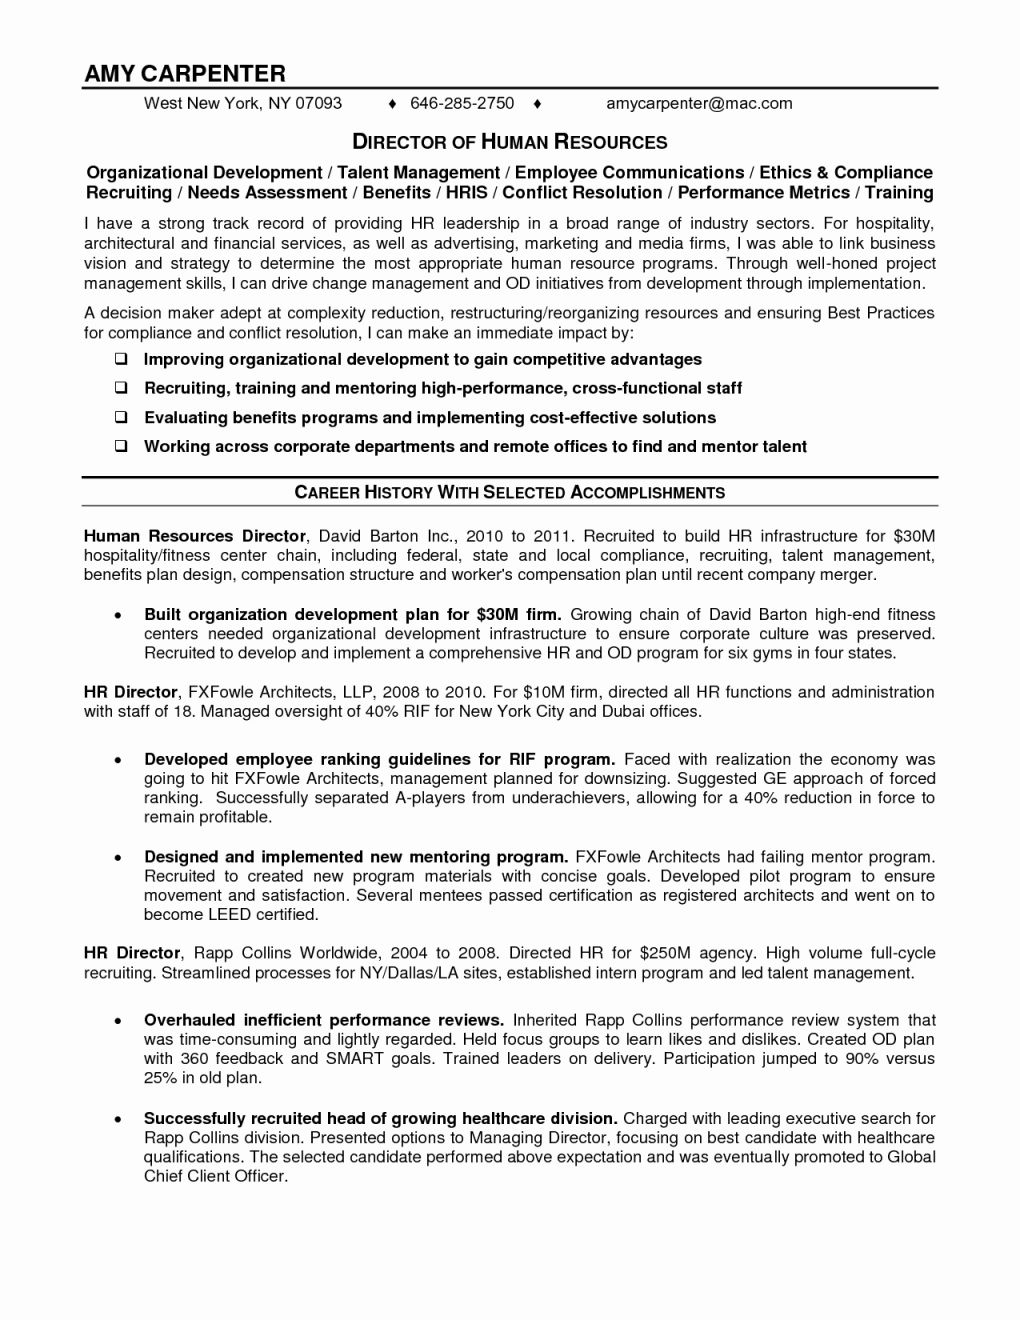 Construction Letter Of Intent Template - Beautiful Letter Intent Construction Re86 – Documentaries for Change